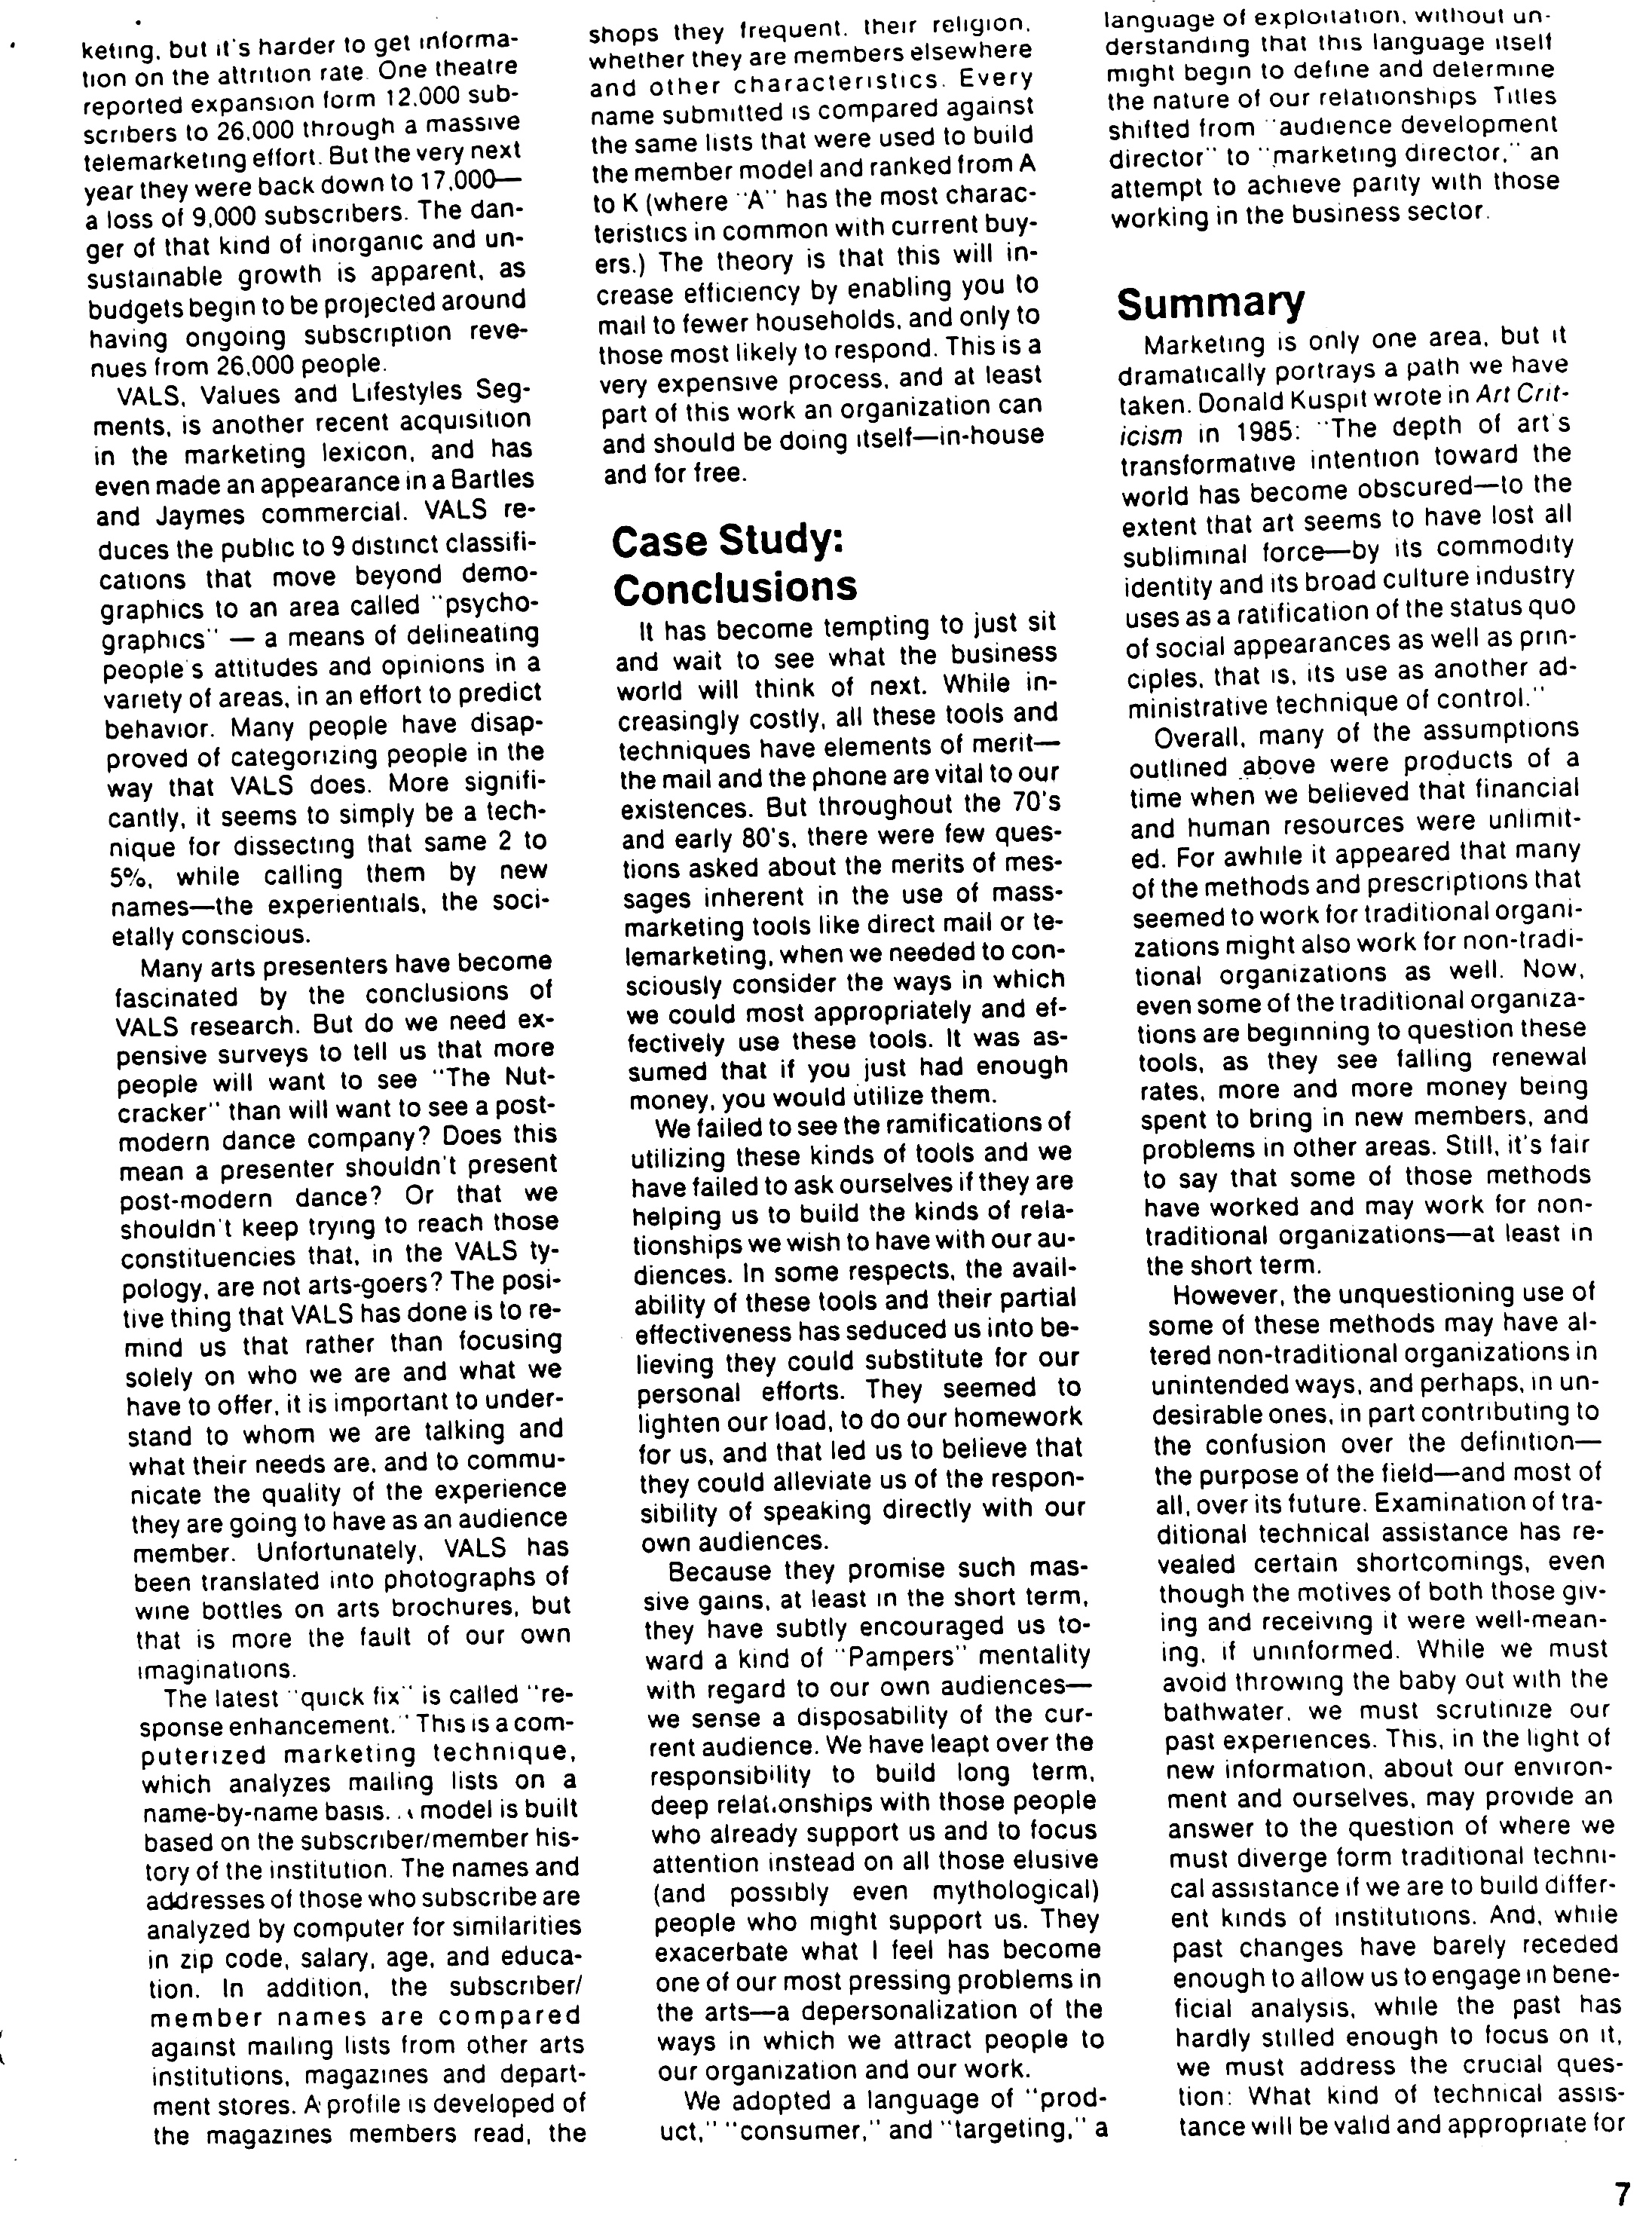 January-February 1988 - NAAO Commissioned Report Page 7.jpg